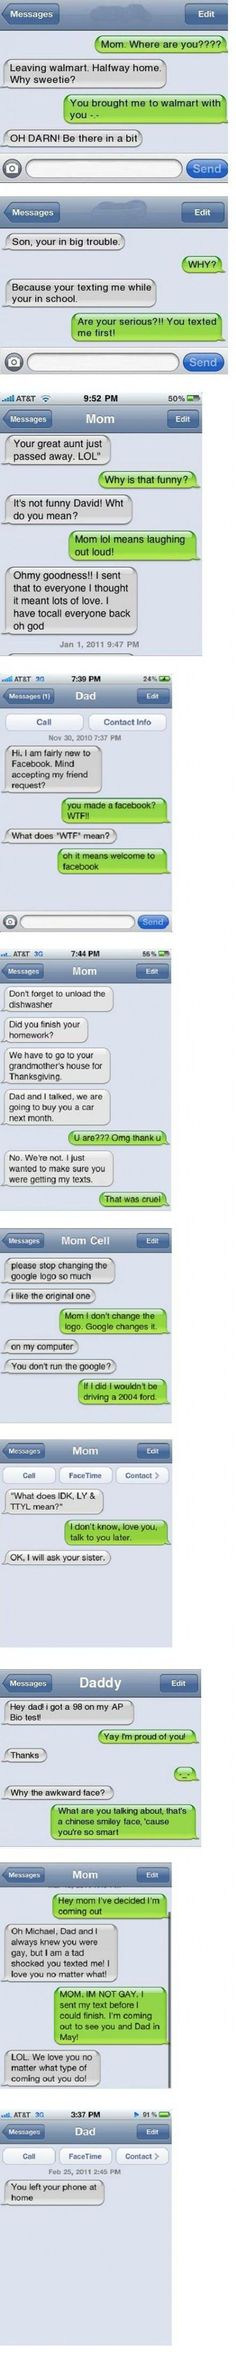 Texting with parents- reminds me of my mother lol @Beth Griffis